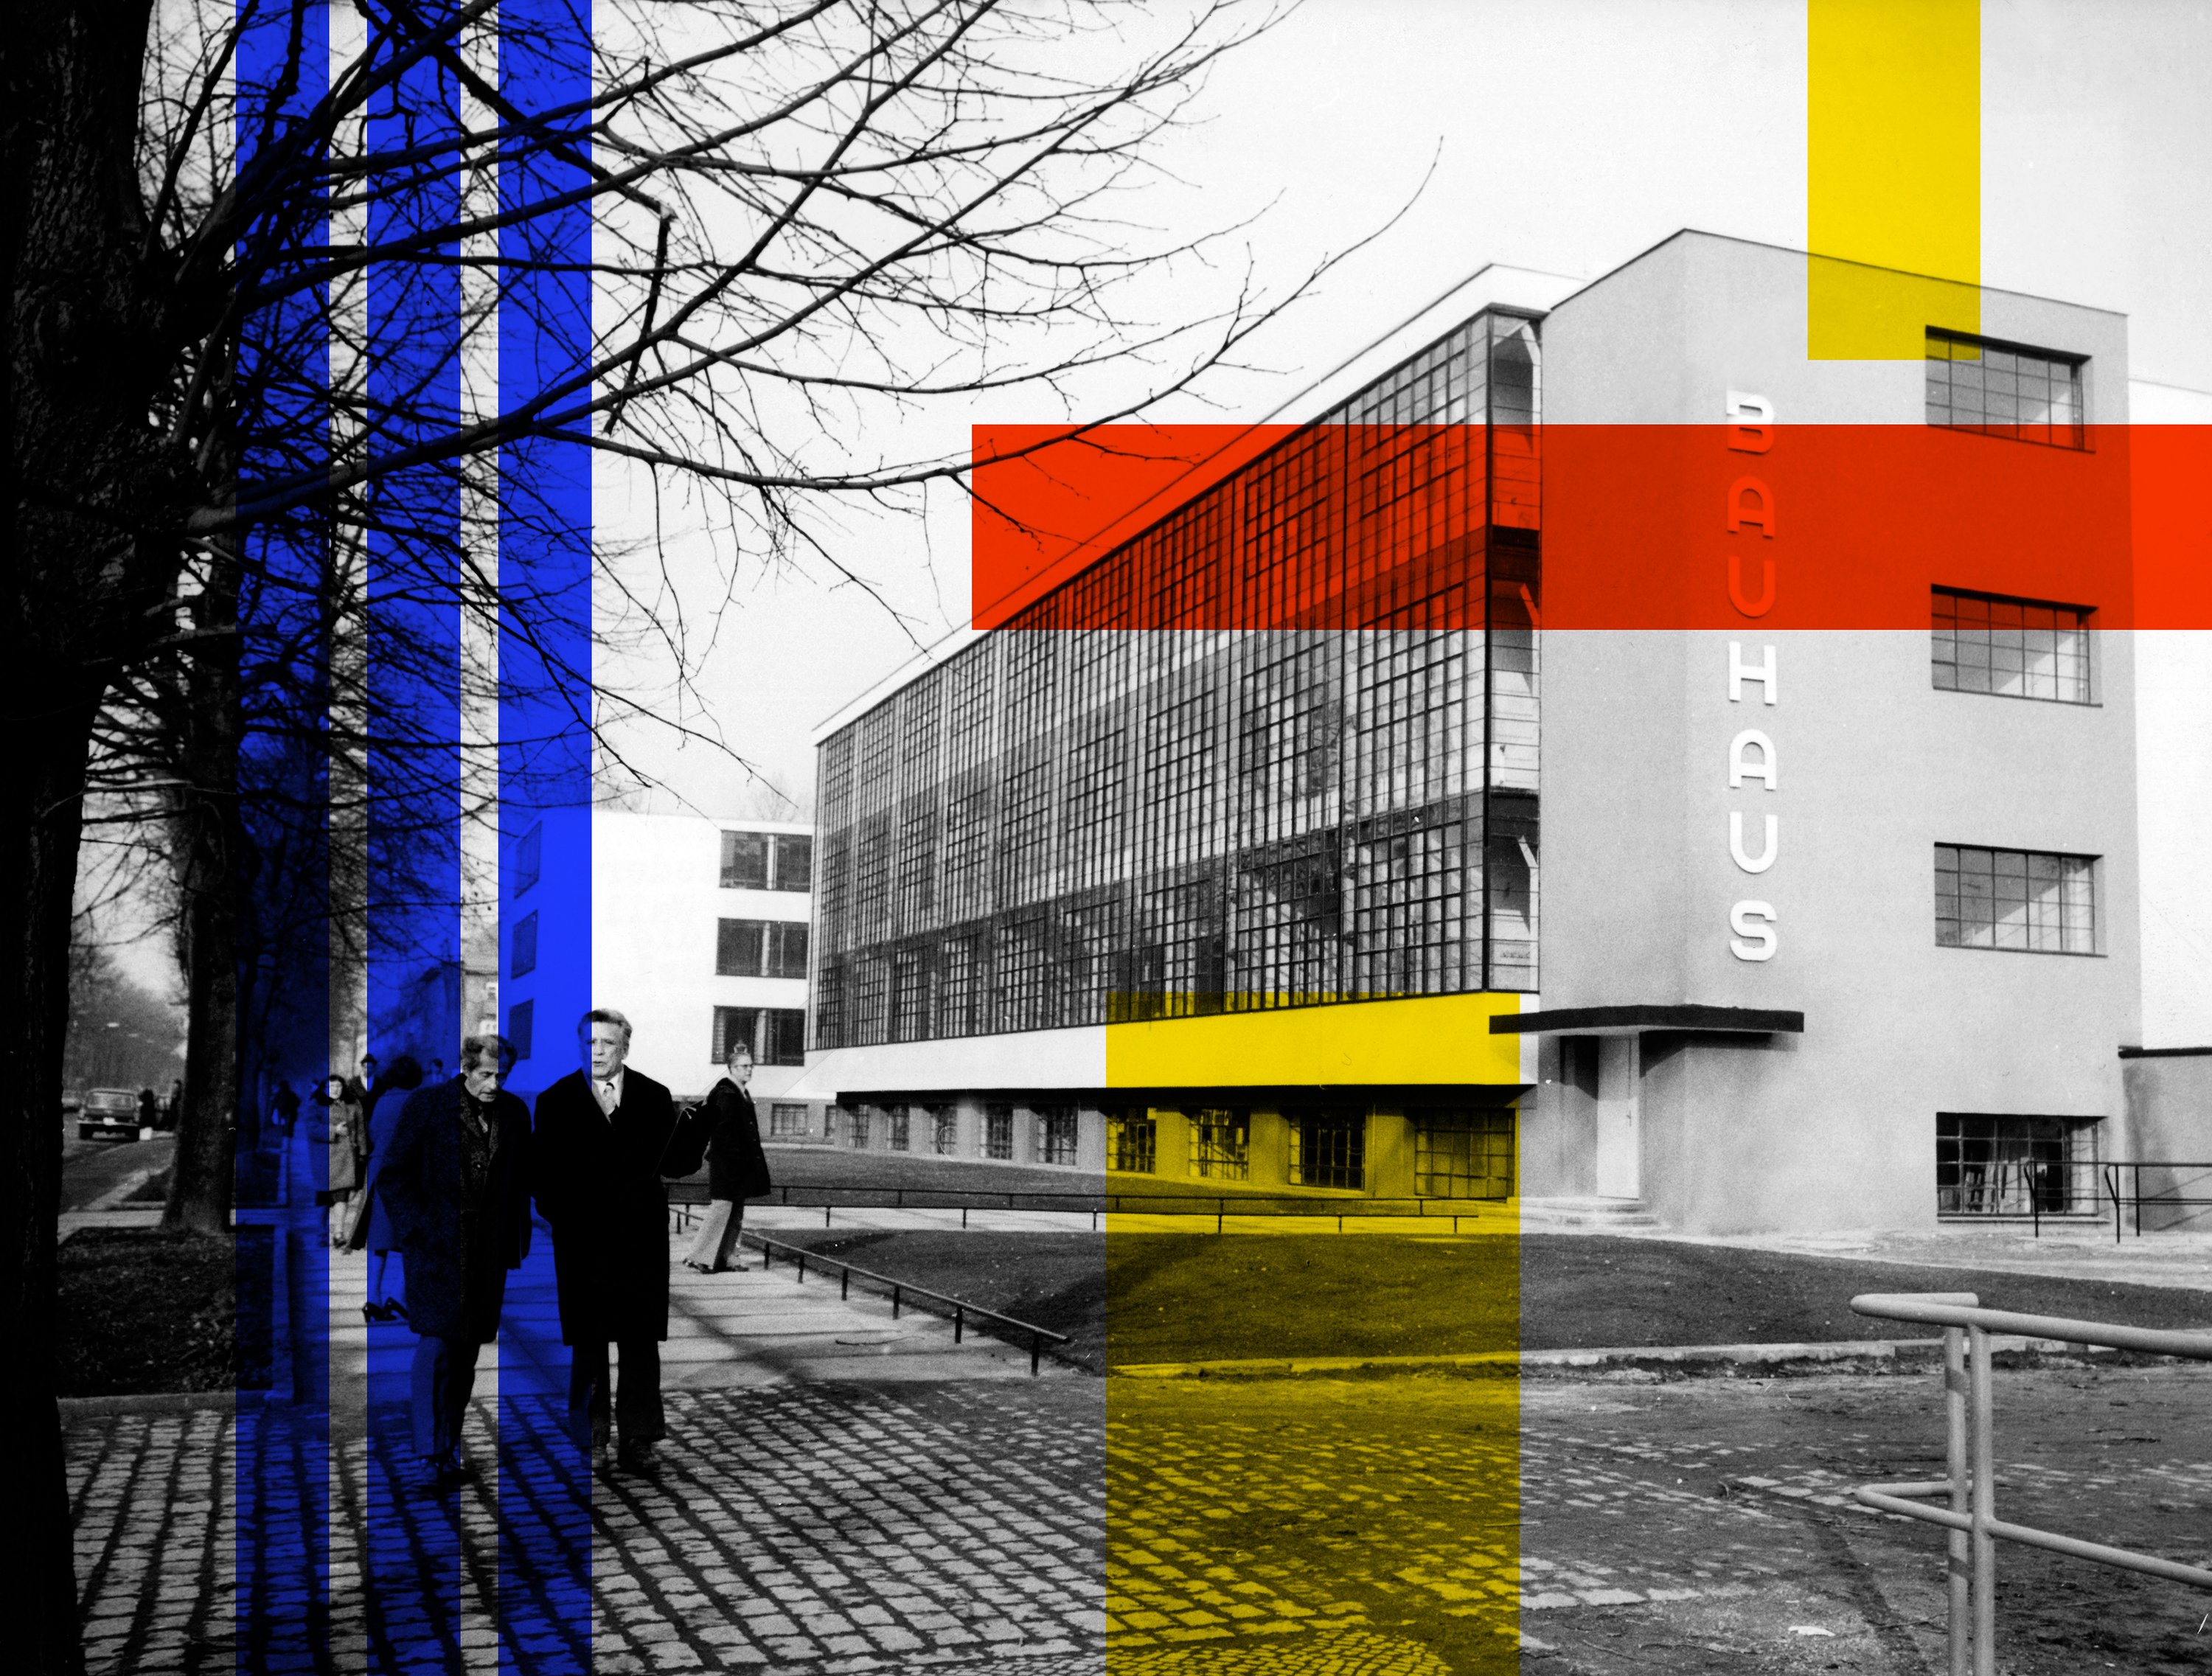 Today's Google Doodle celebrates the 100th anniversary of Bauhaus